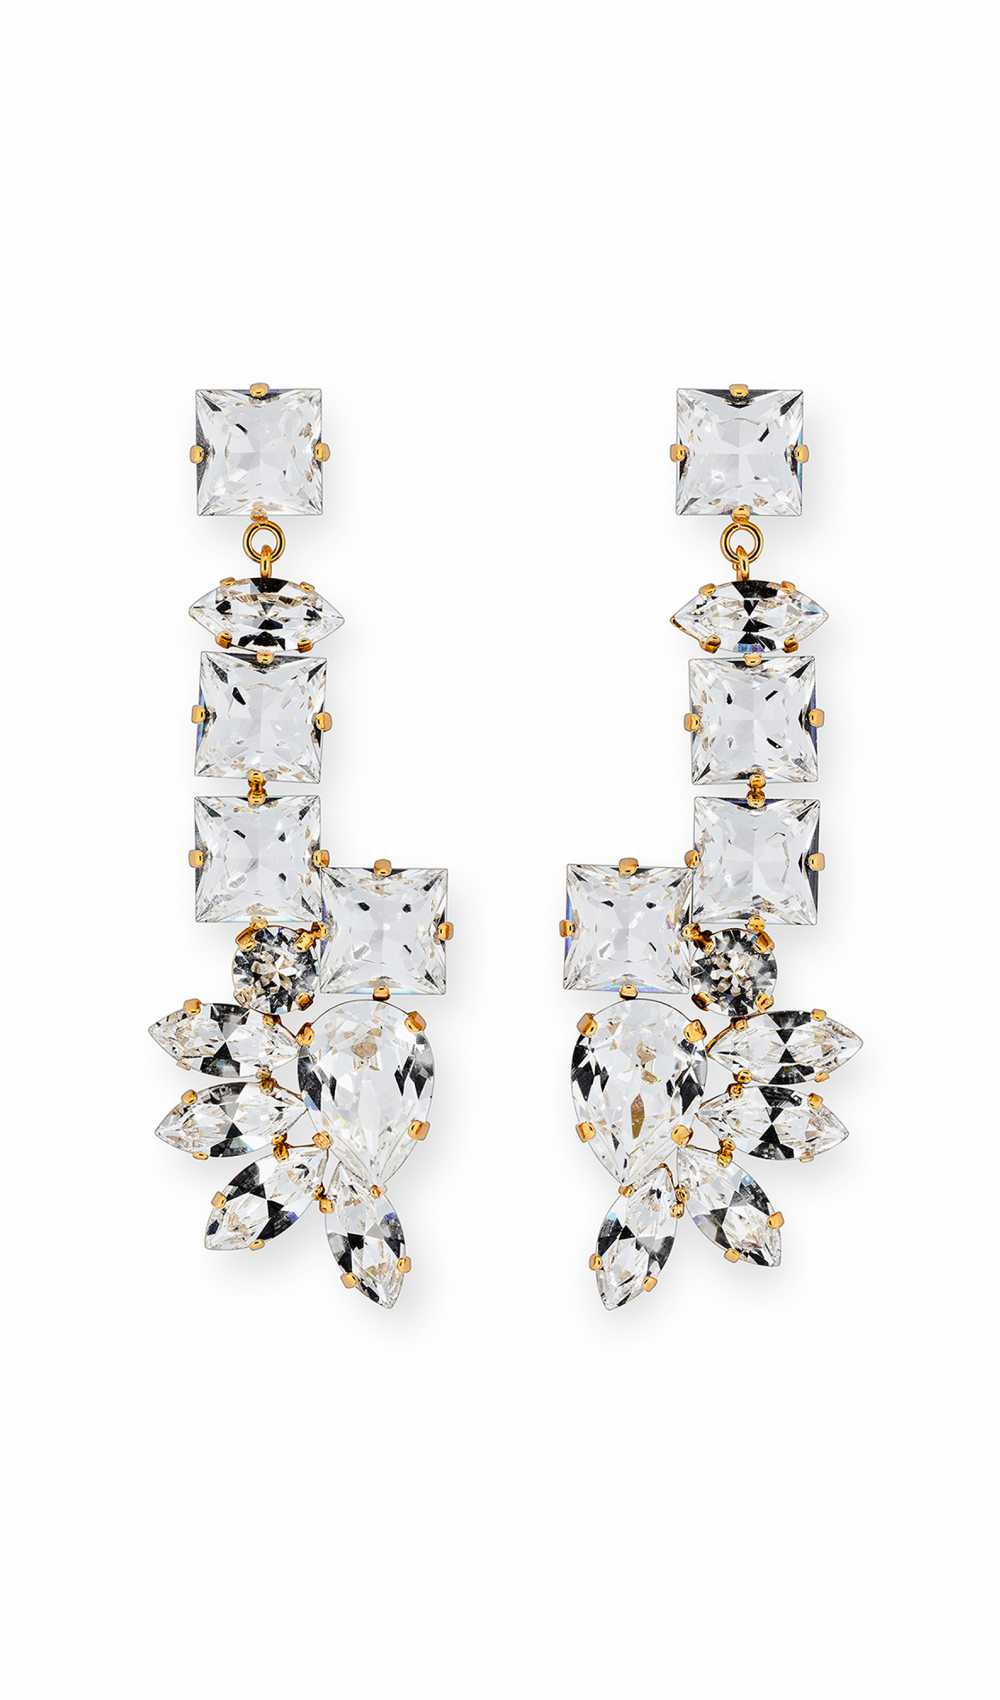 Earrings Duo Long von Sabrina Dehoff bei Kaviar Gauche